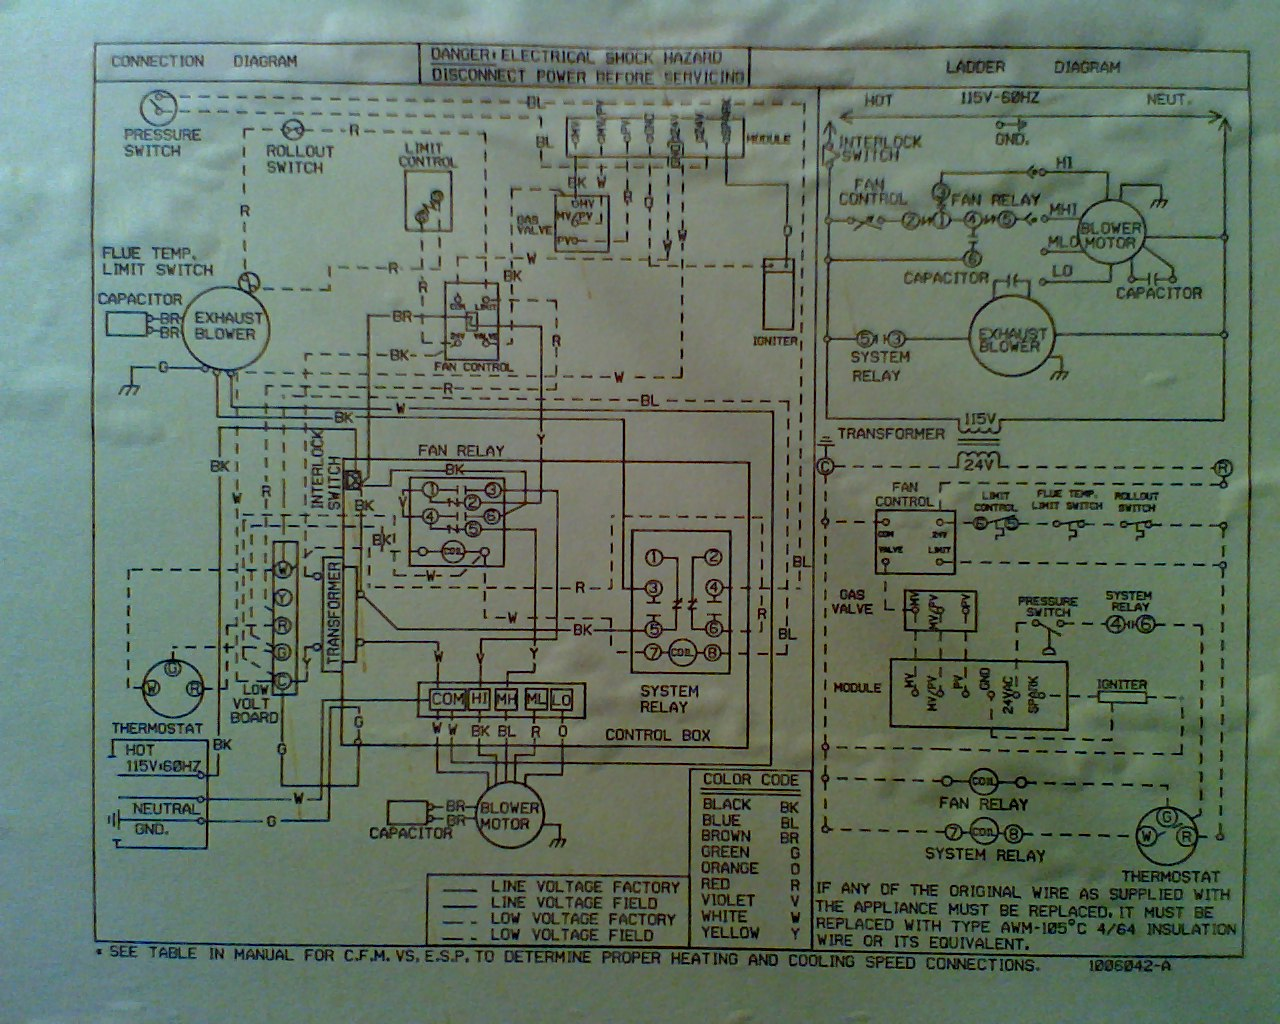 2009 11 20_231603_1120091711a air conditioner y wire grihon com ac, coolers & devices tempstar 2200 air conditioner wiring diagram at bayanpartner.co